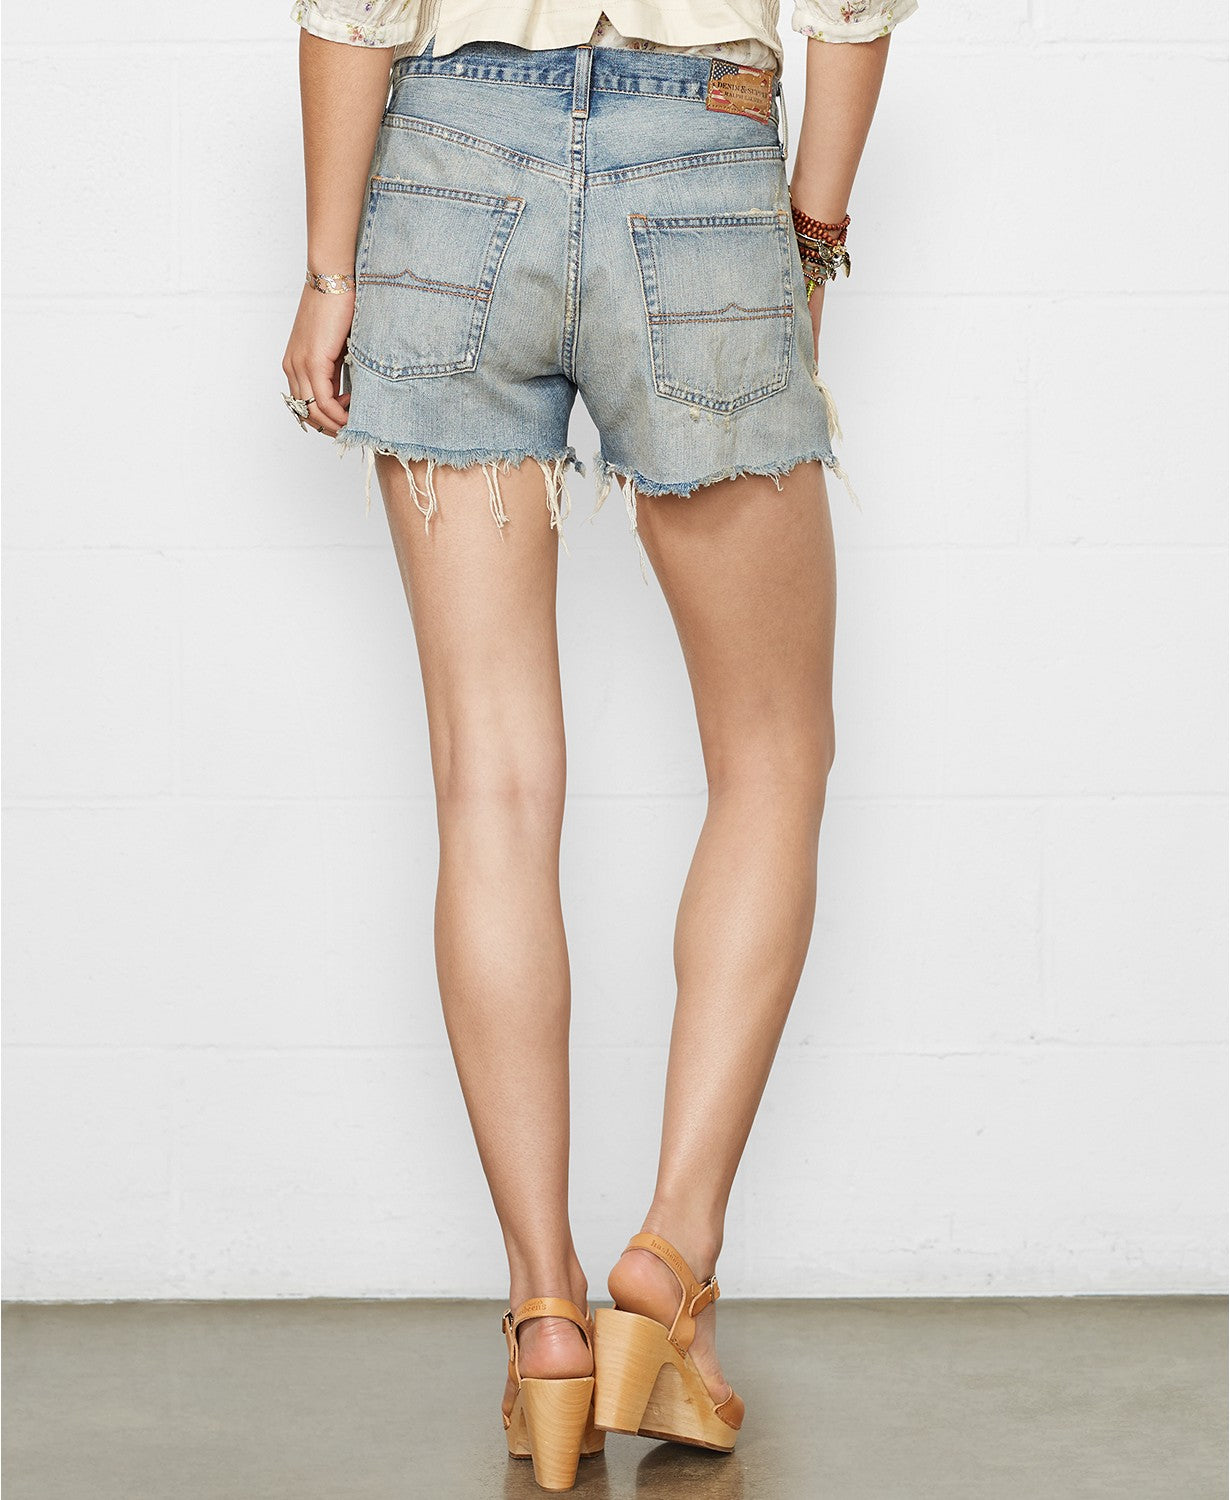 Denim & Supply Ralph Lauren Distressed Denim Boyfriend Shorts 25 - Gear Relapse